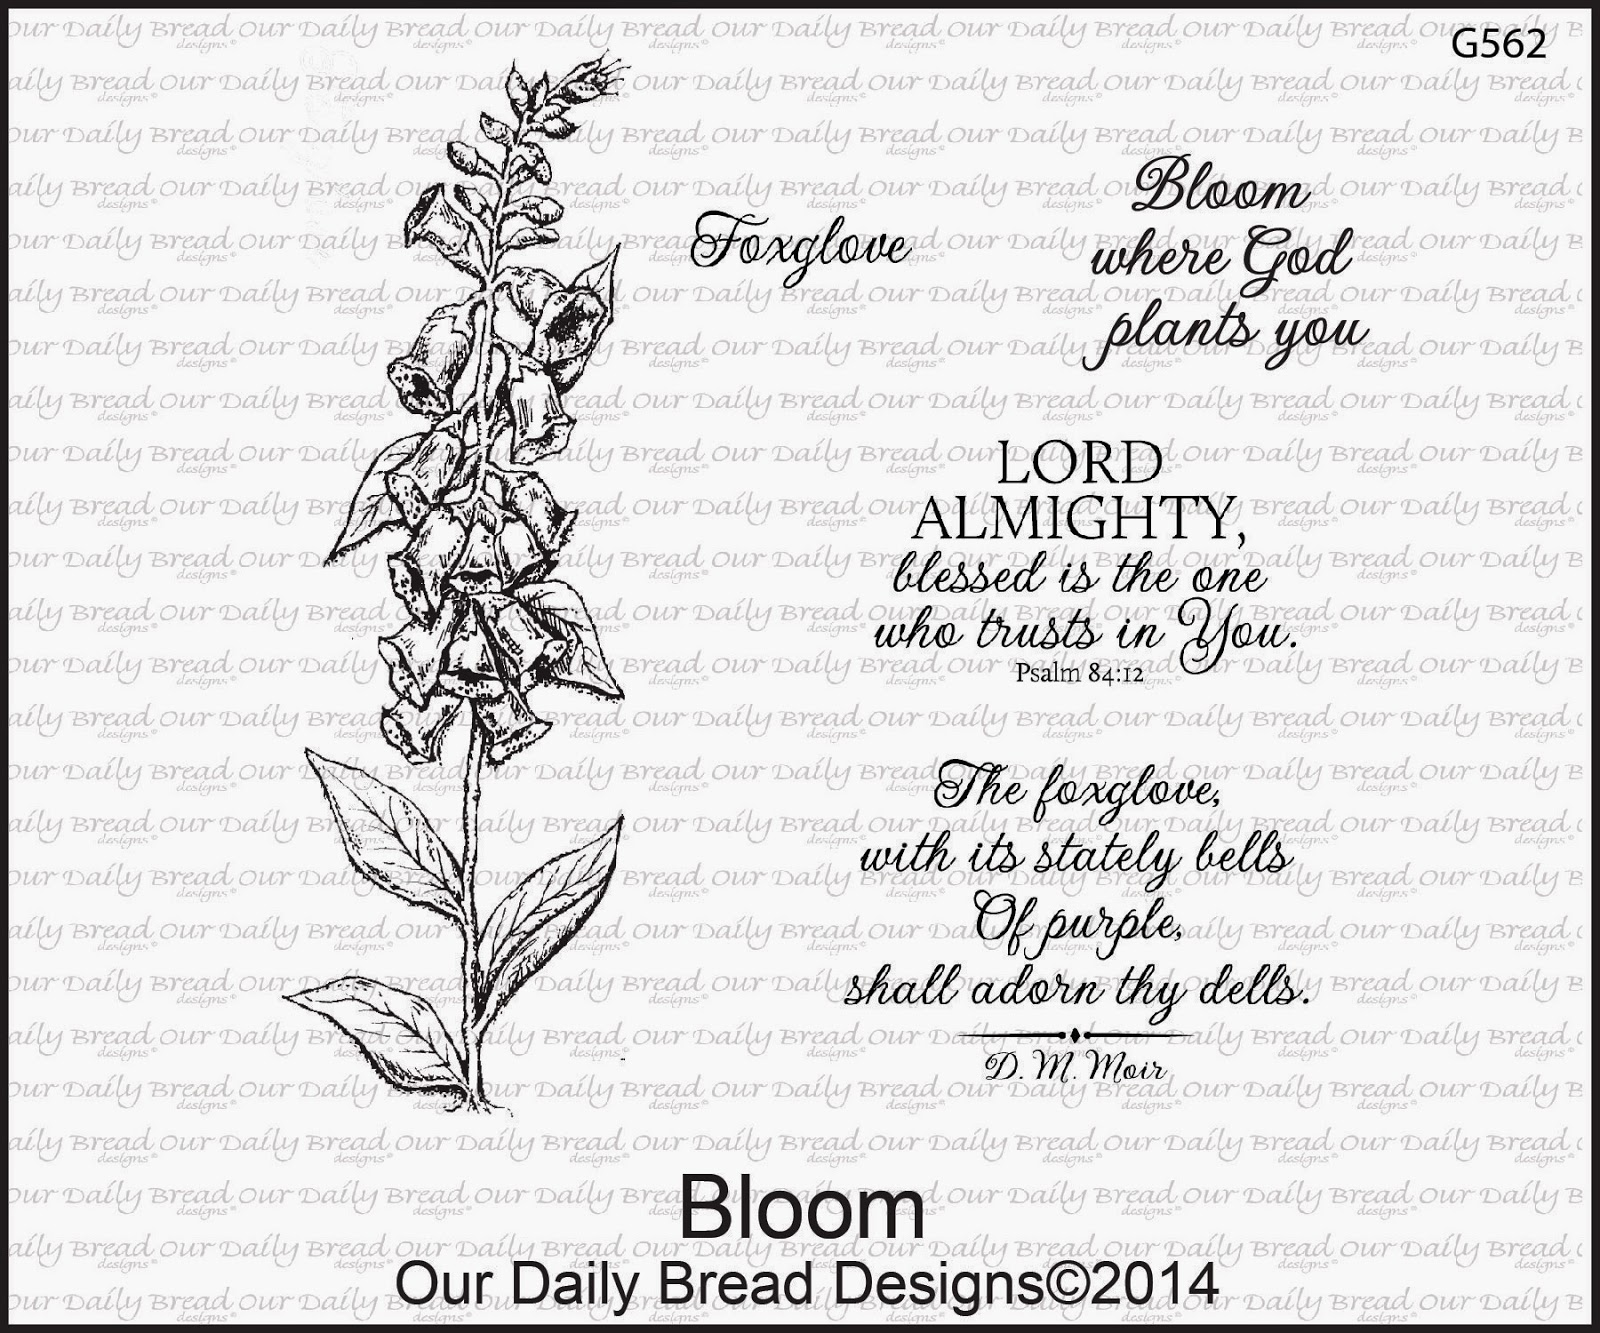 Stamps - Our Daily Bread Designs Bloom